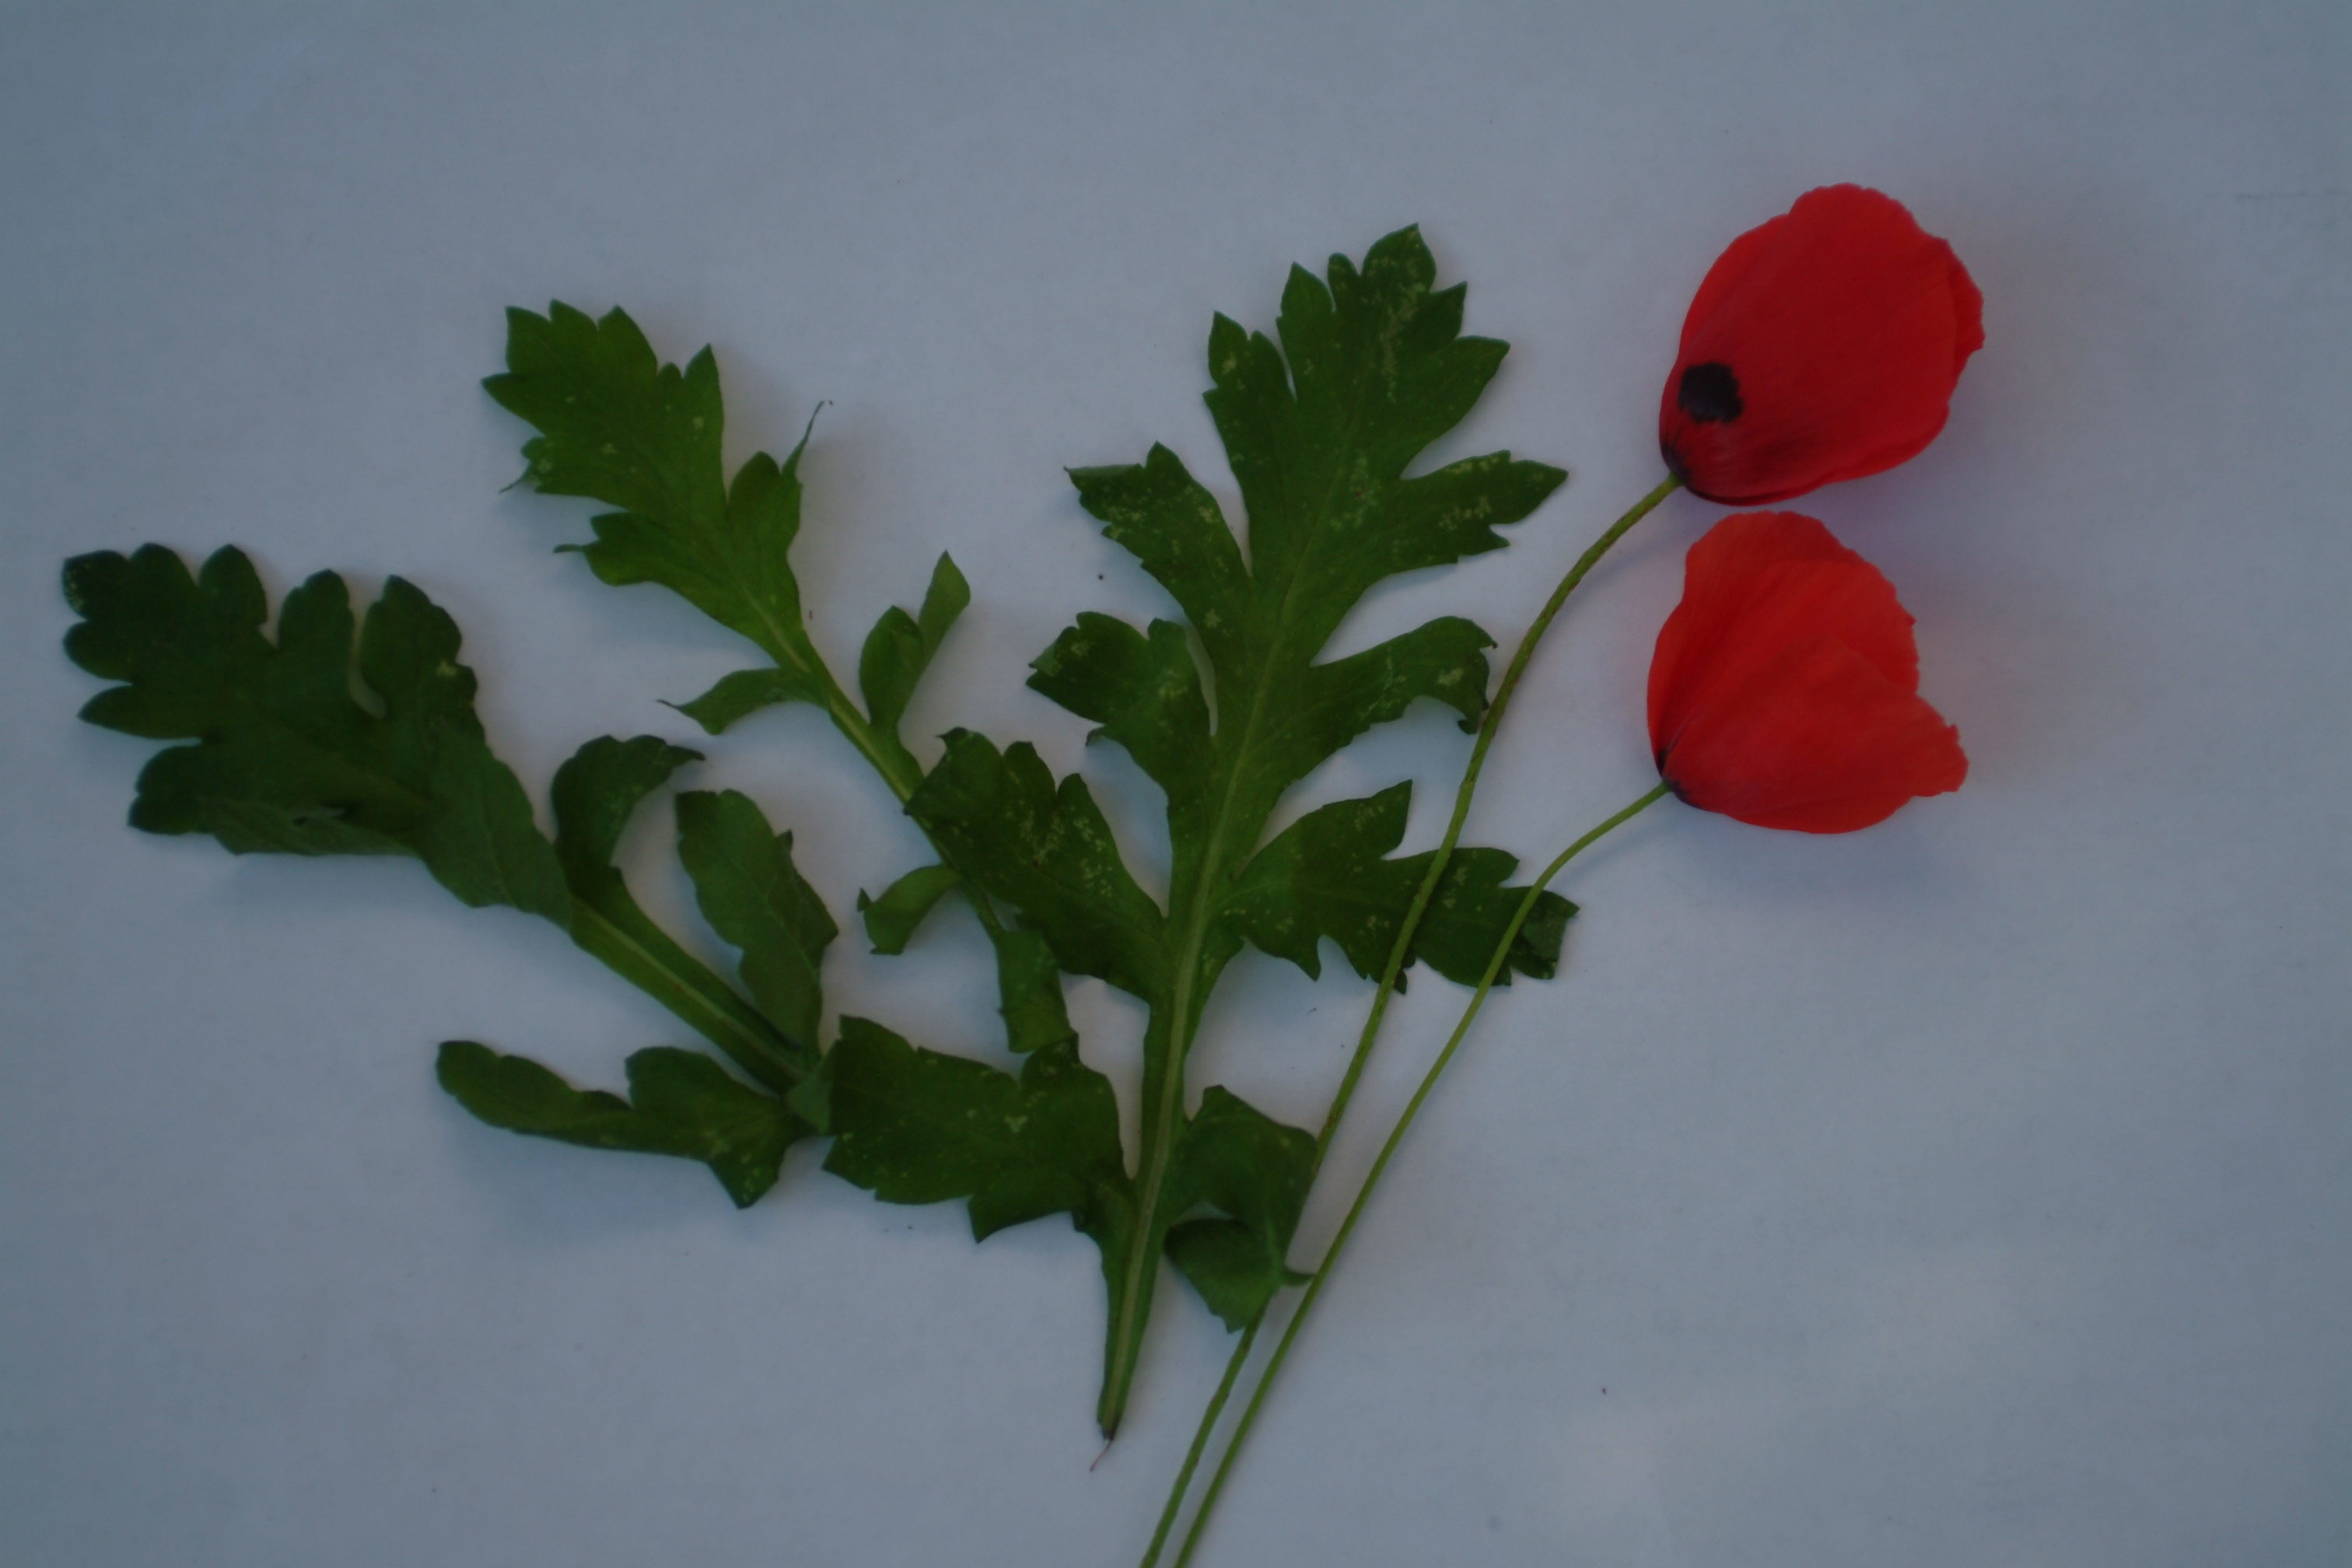 Horta lessons skopelosnews these are the leaves of a poppy the plant is widely grown in warm temperate and tropical climatese plant has a smooth texture with slightly branched mightylinksfo Choice Image